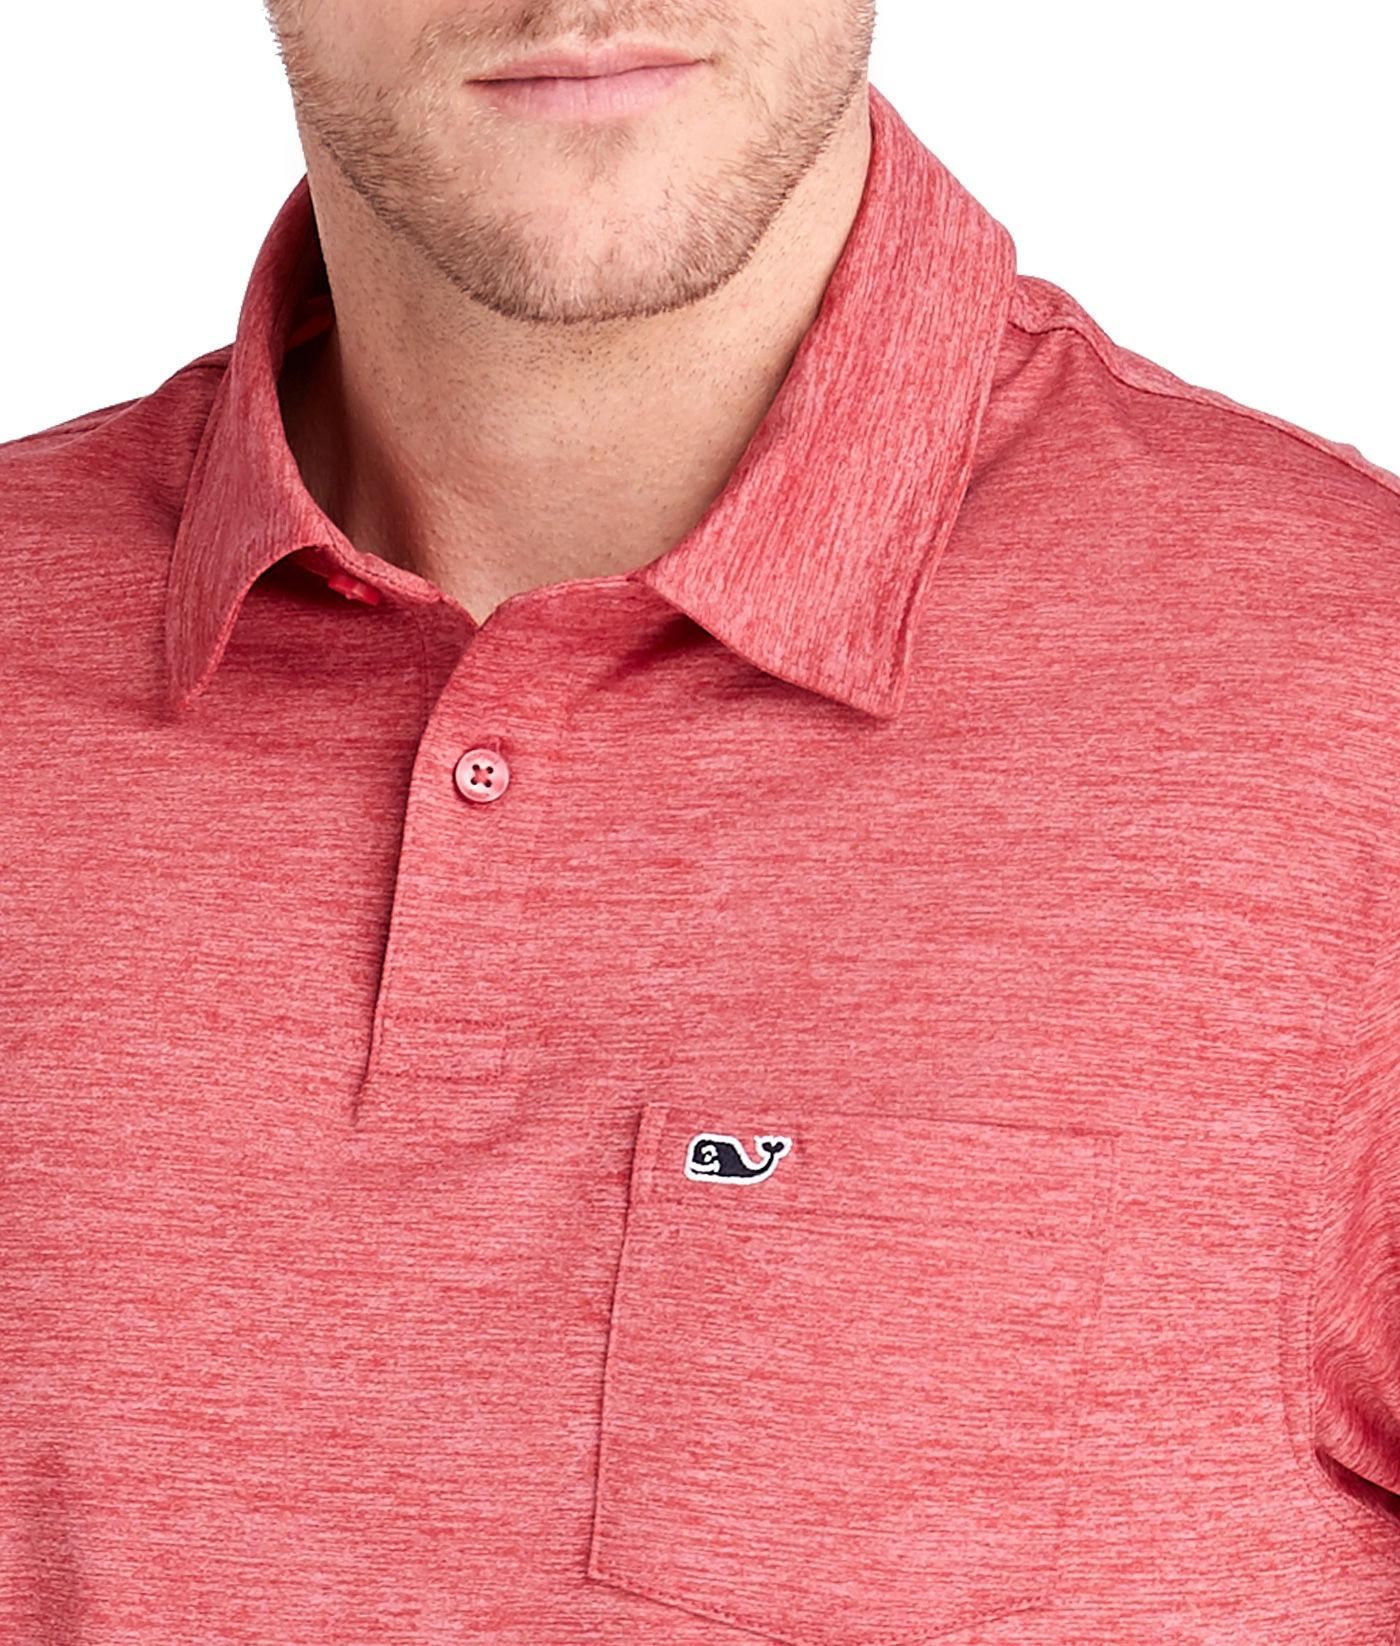 c077d9db6a Vineyard Vines - Red St. Kitts Solid Bowline Fit Polo for Men - Lyst. View  fullscreen